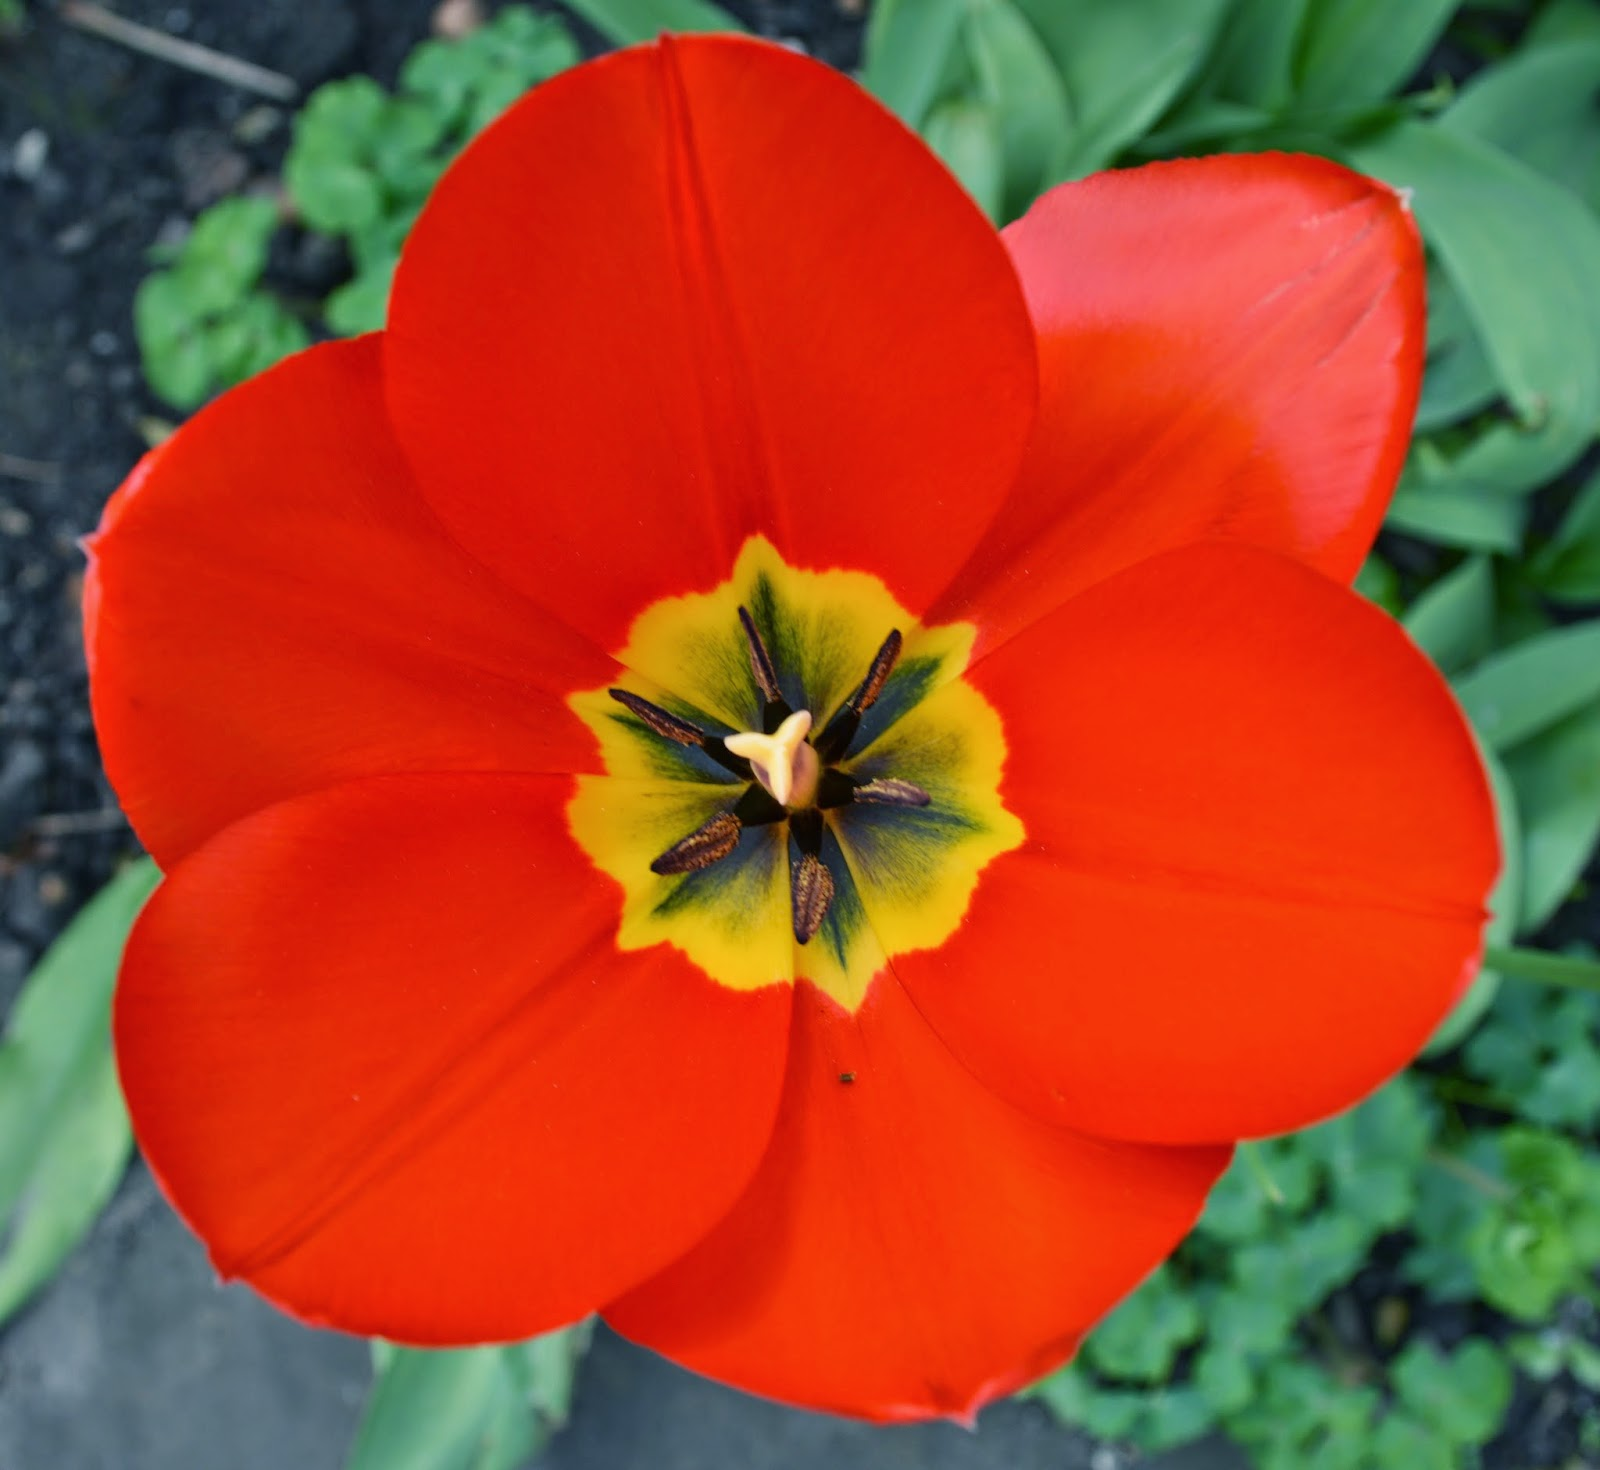 single red flower, open, petals, photograph, photo, green leaves,